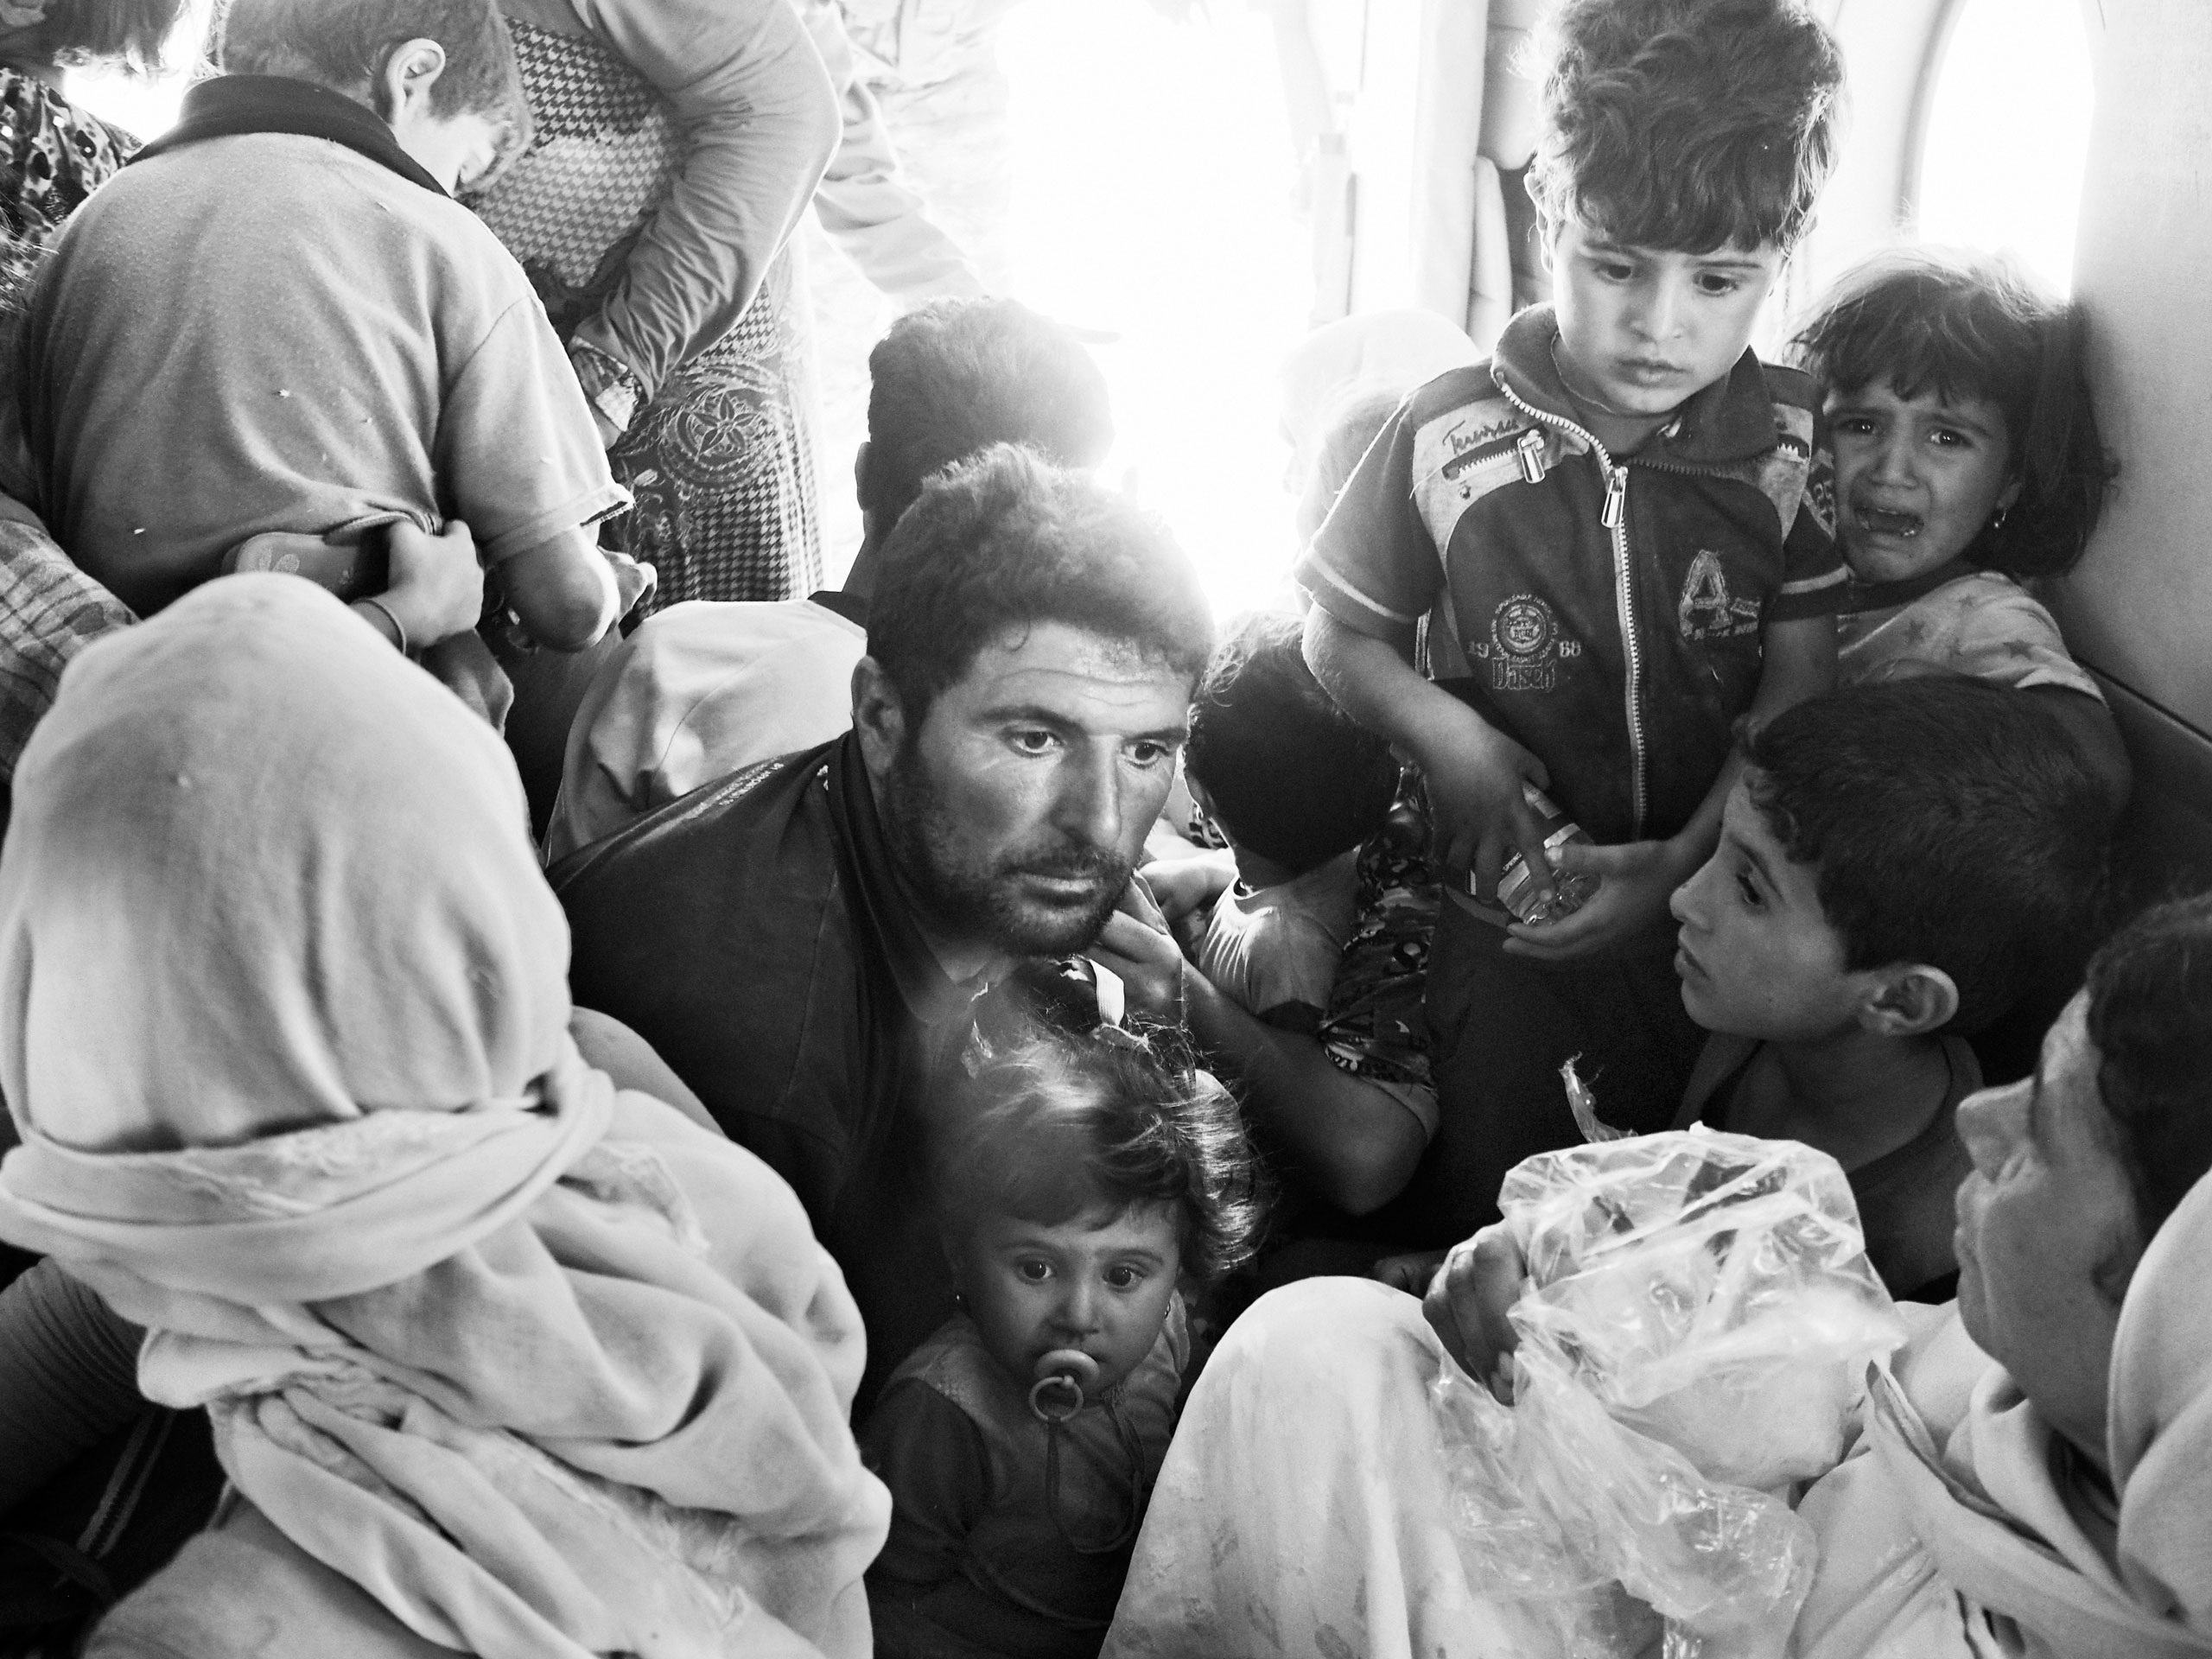 Frightened Yezidi families aboard an Iraqi air force rescue helicopter. Sinjar Mountains, Iraq. Aug. 12, 2014.